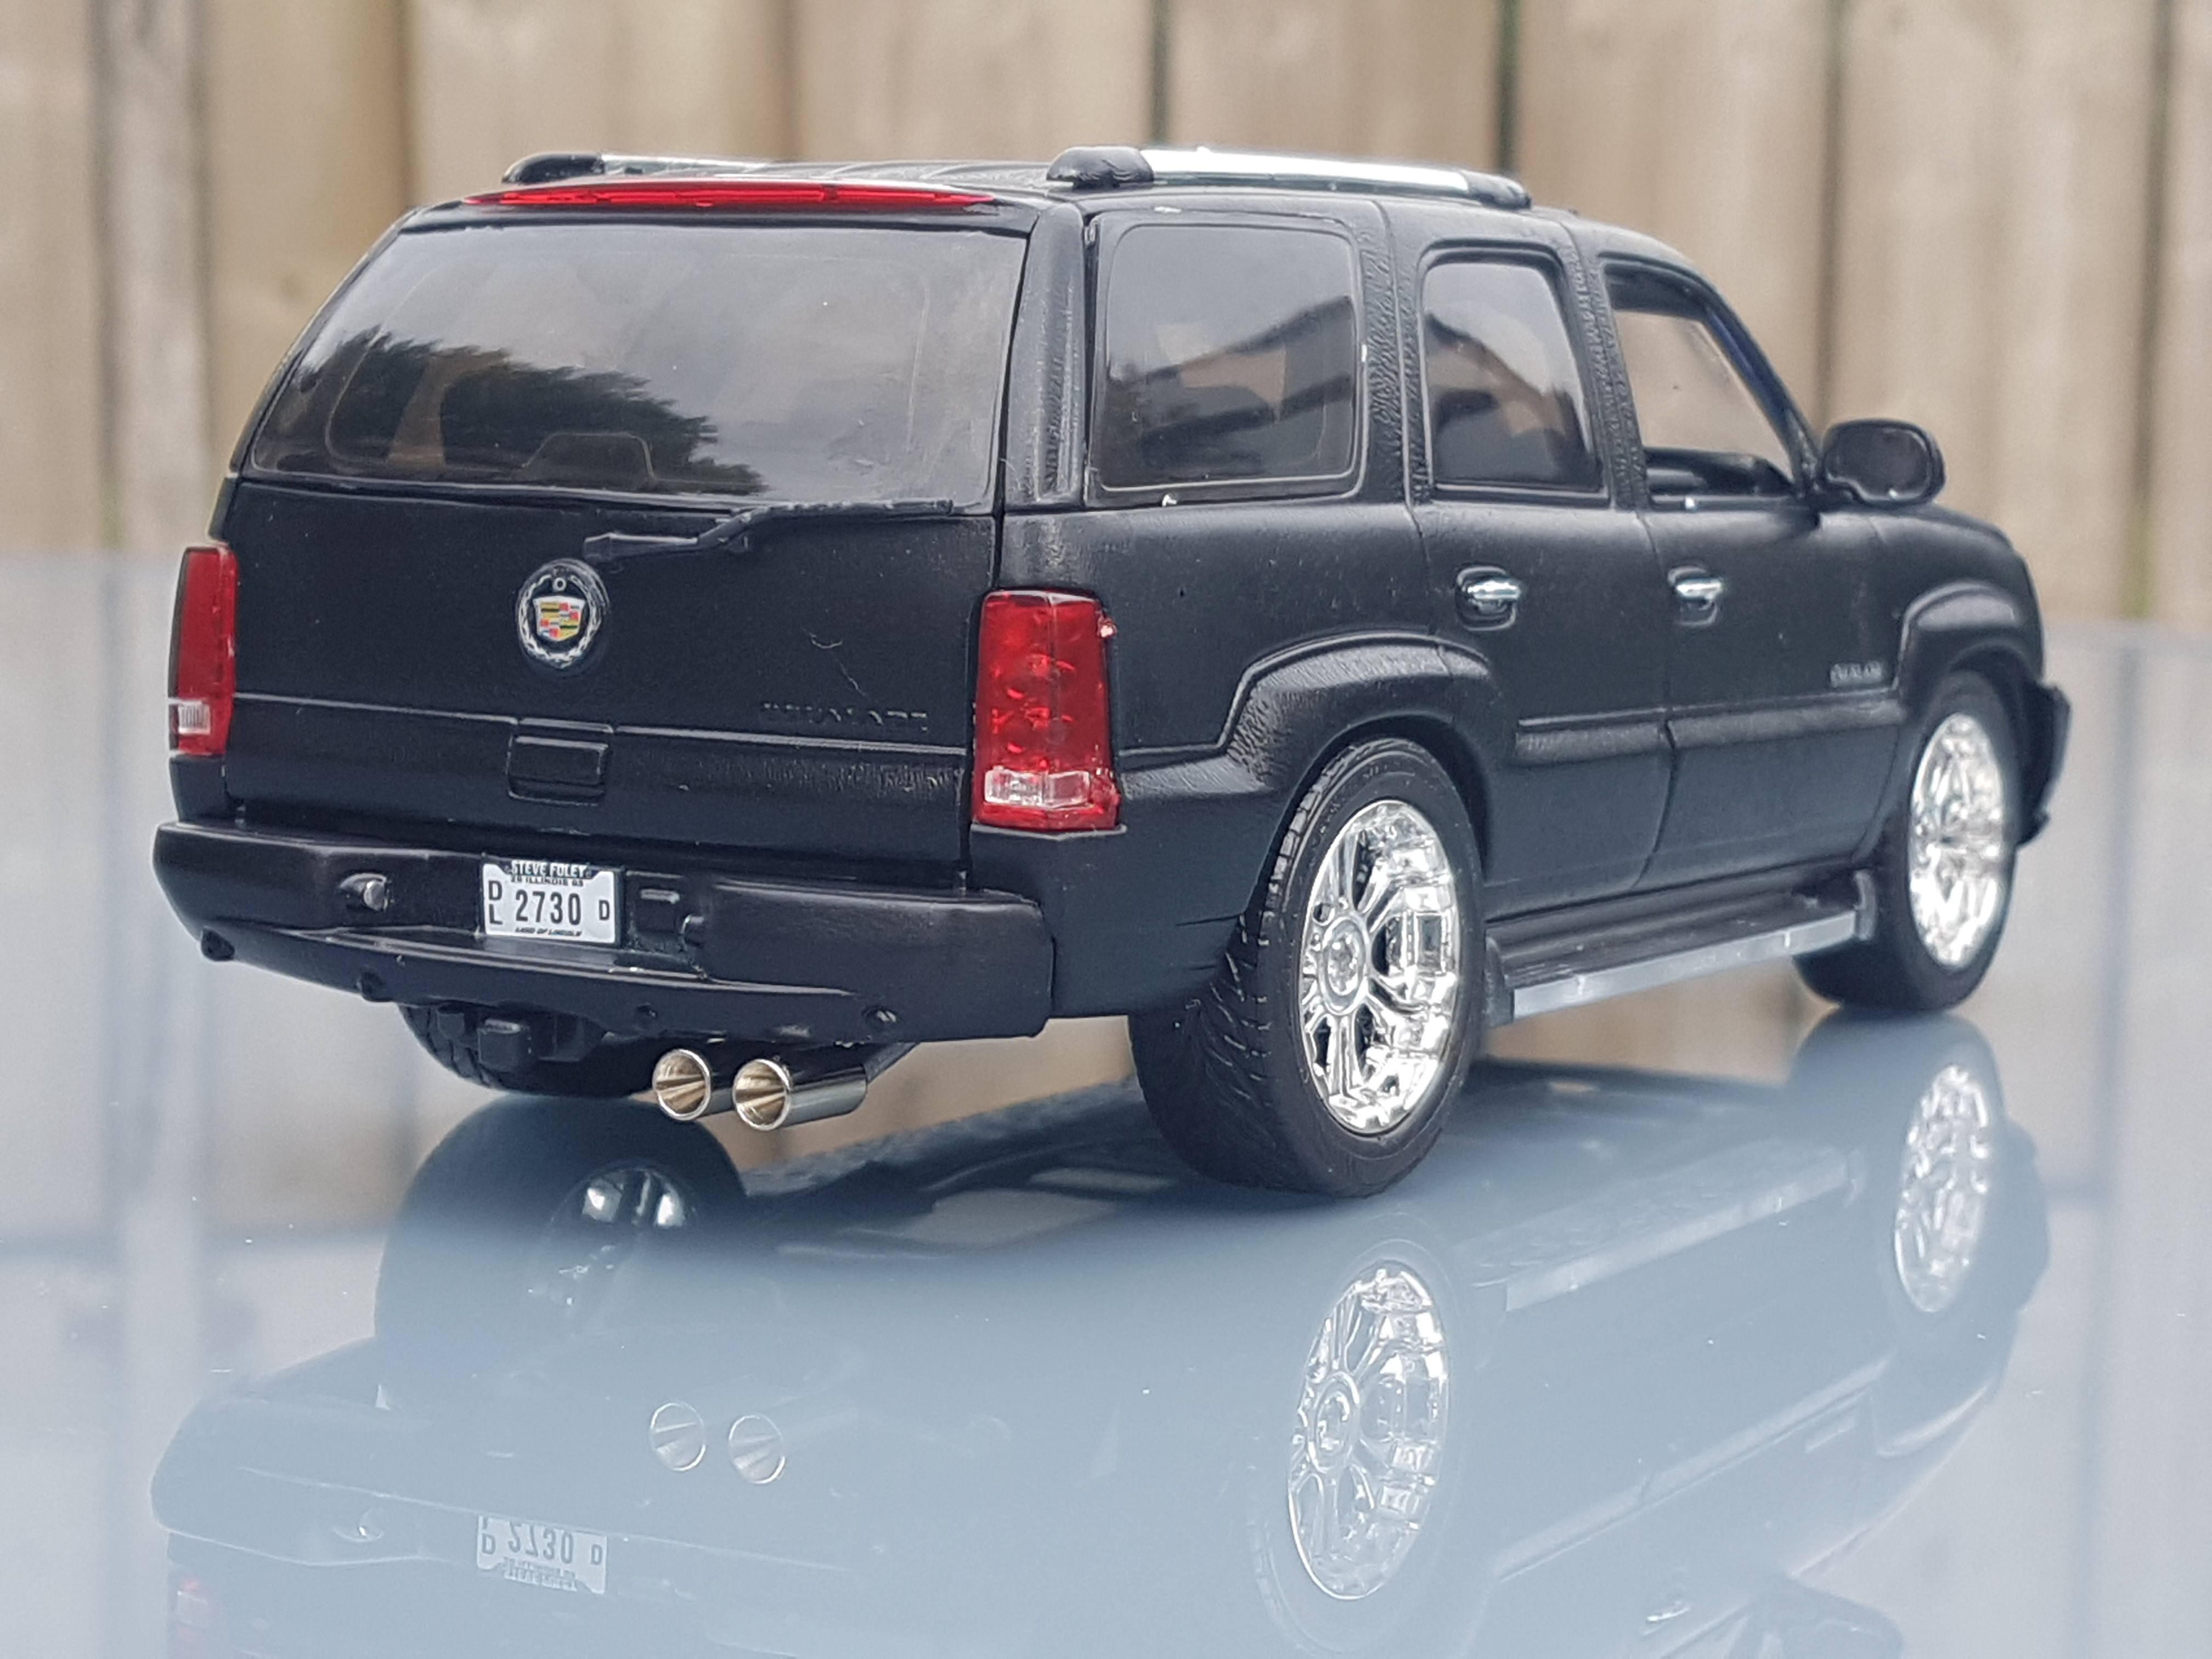 Cadillacescalade on 2002 Cadillac Escalade